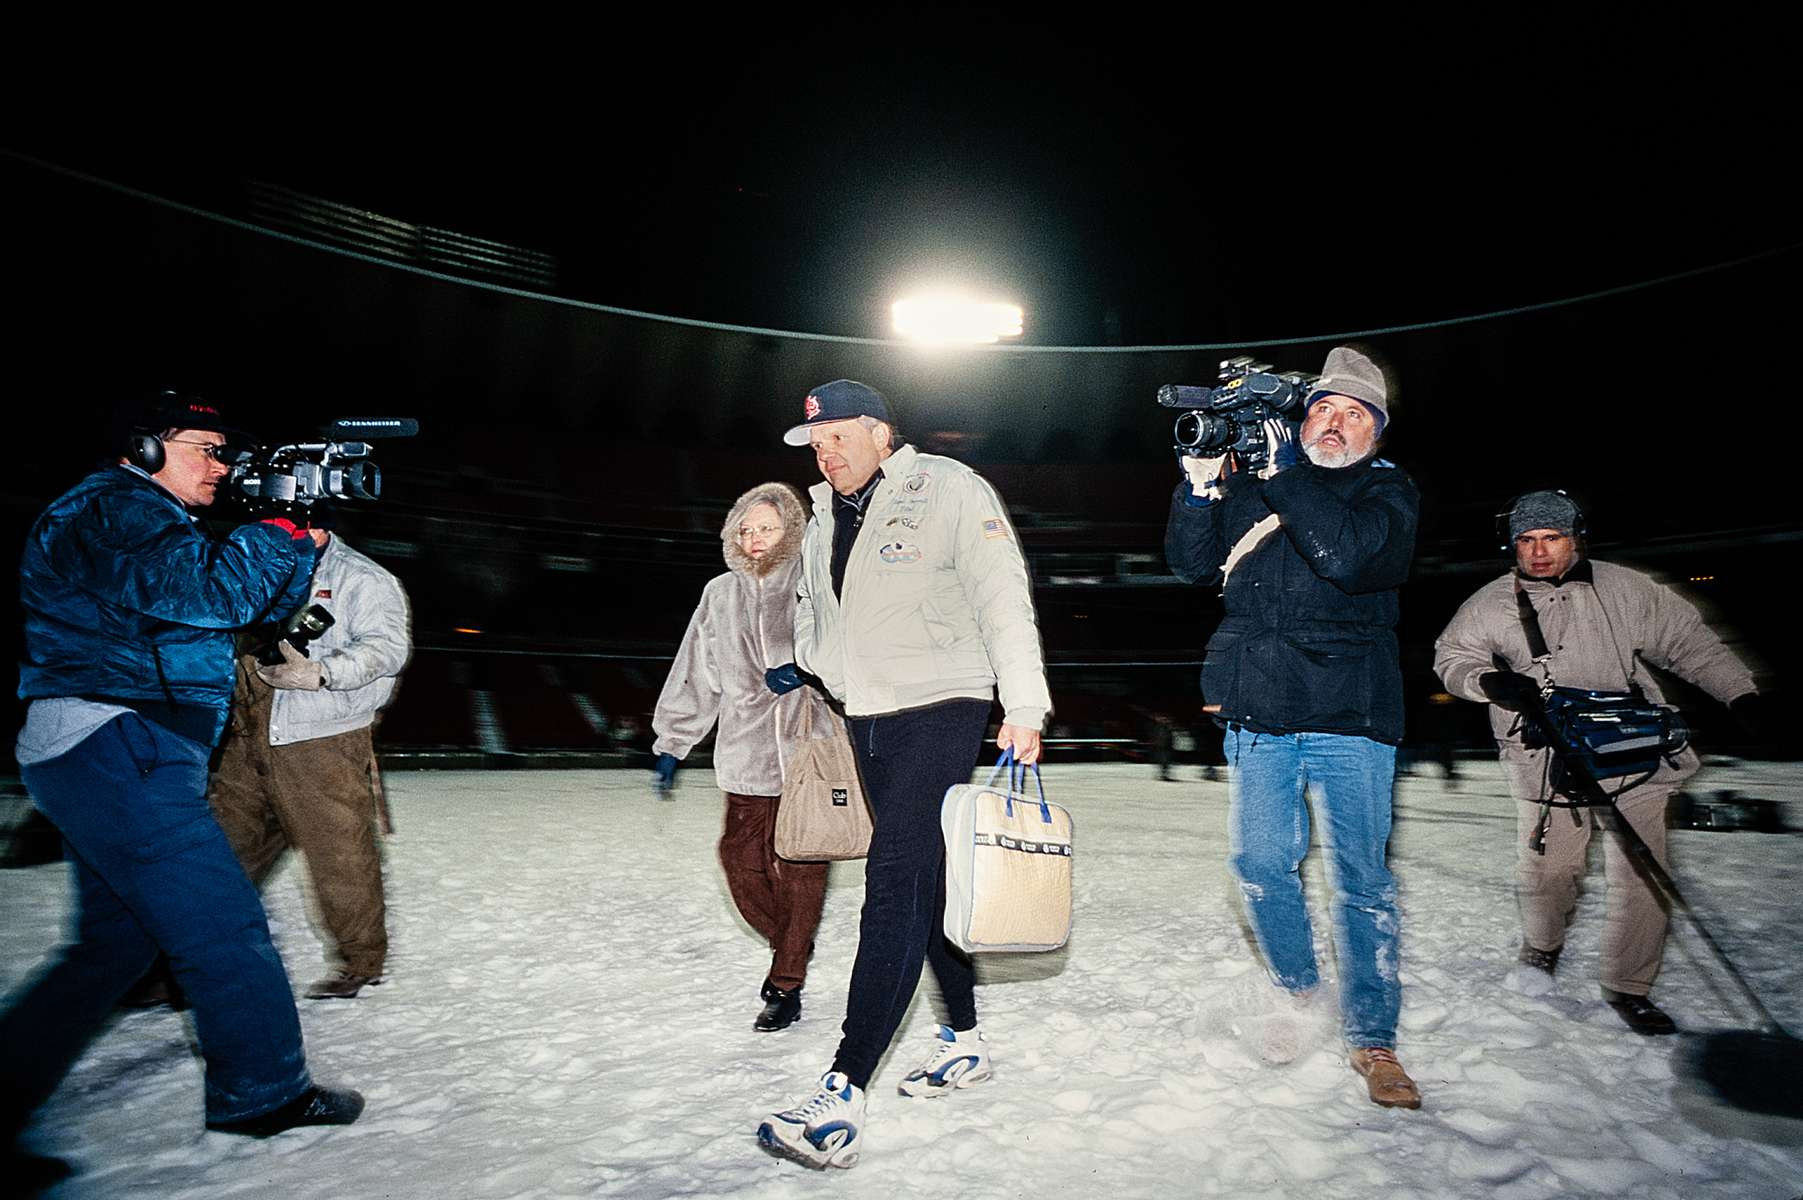 Media crews move quickly to get the images and sounds of Steve and Peggy Fossett in the St. Louis Busch Stadium as he heads to the Solo Spirit balloon for his second RTW (Round The World) solo flight attempt on January 13, 1997.